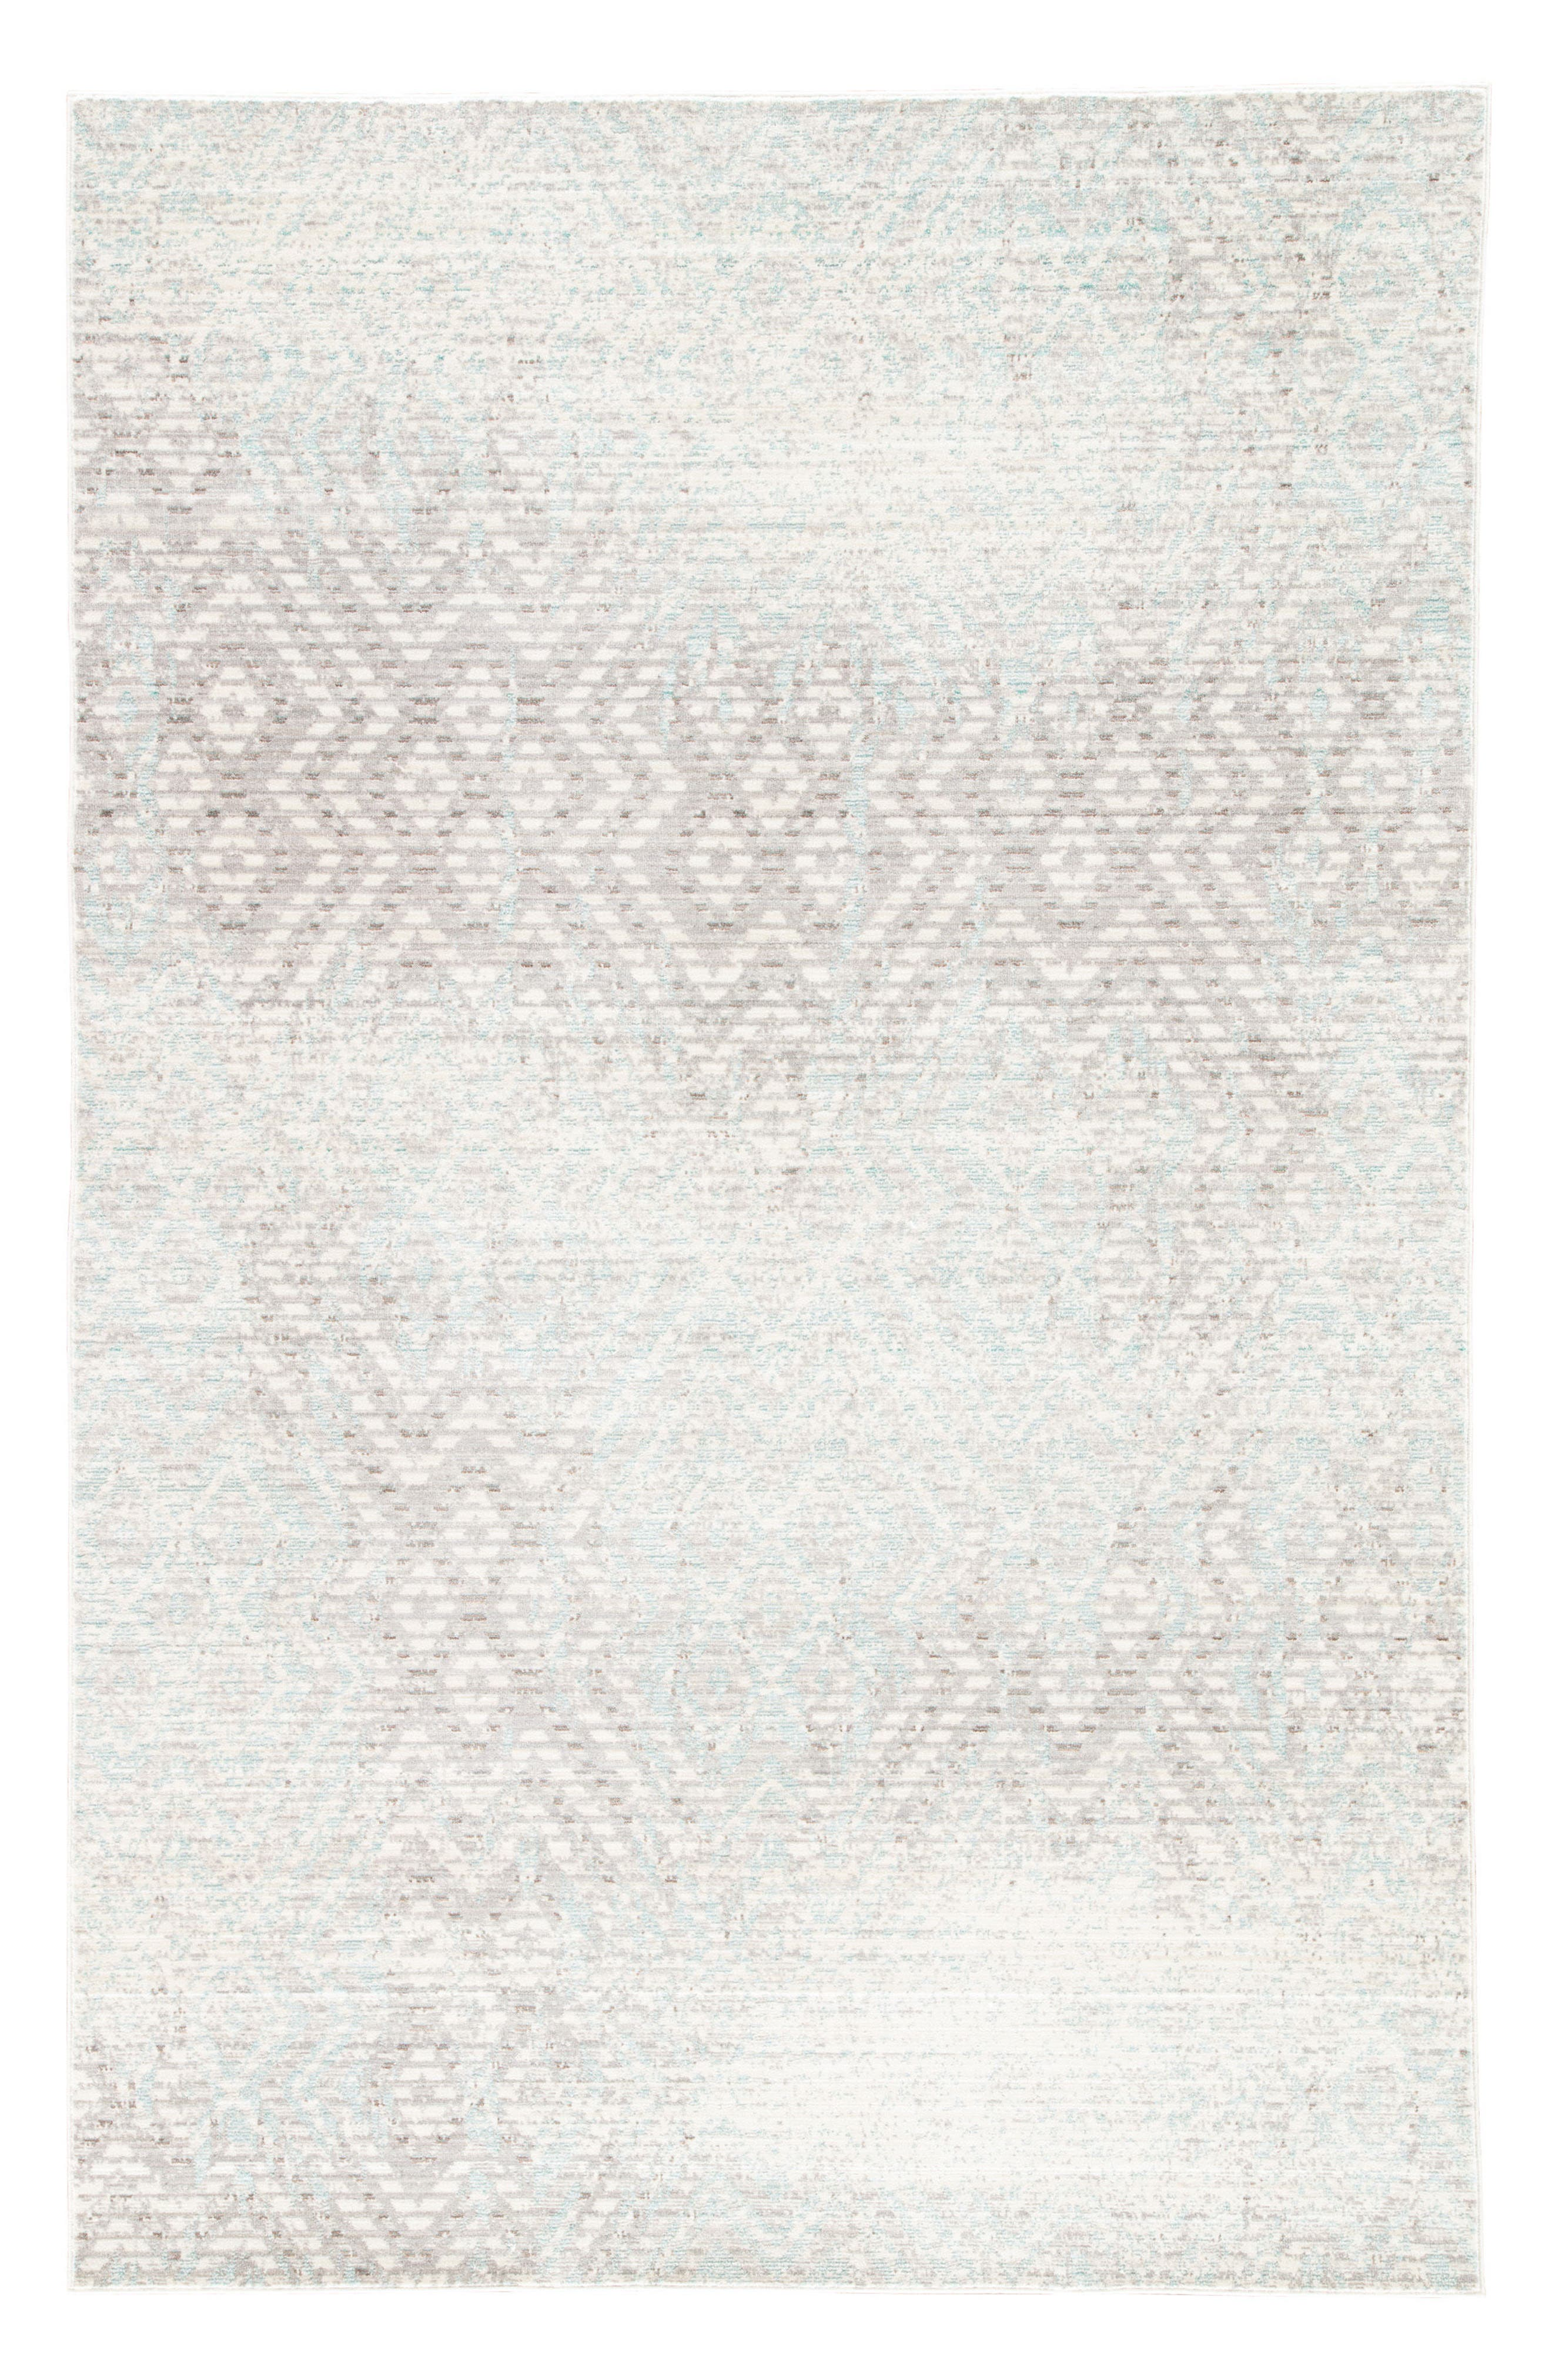 Diamond Interlock Rug,                         Main,                         color, 021